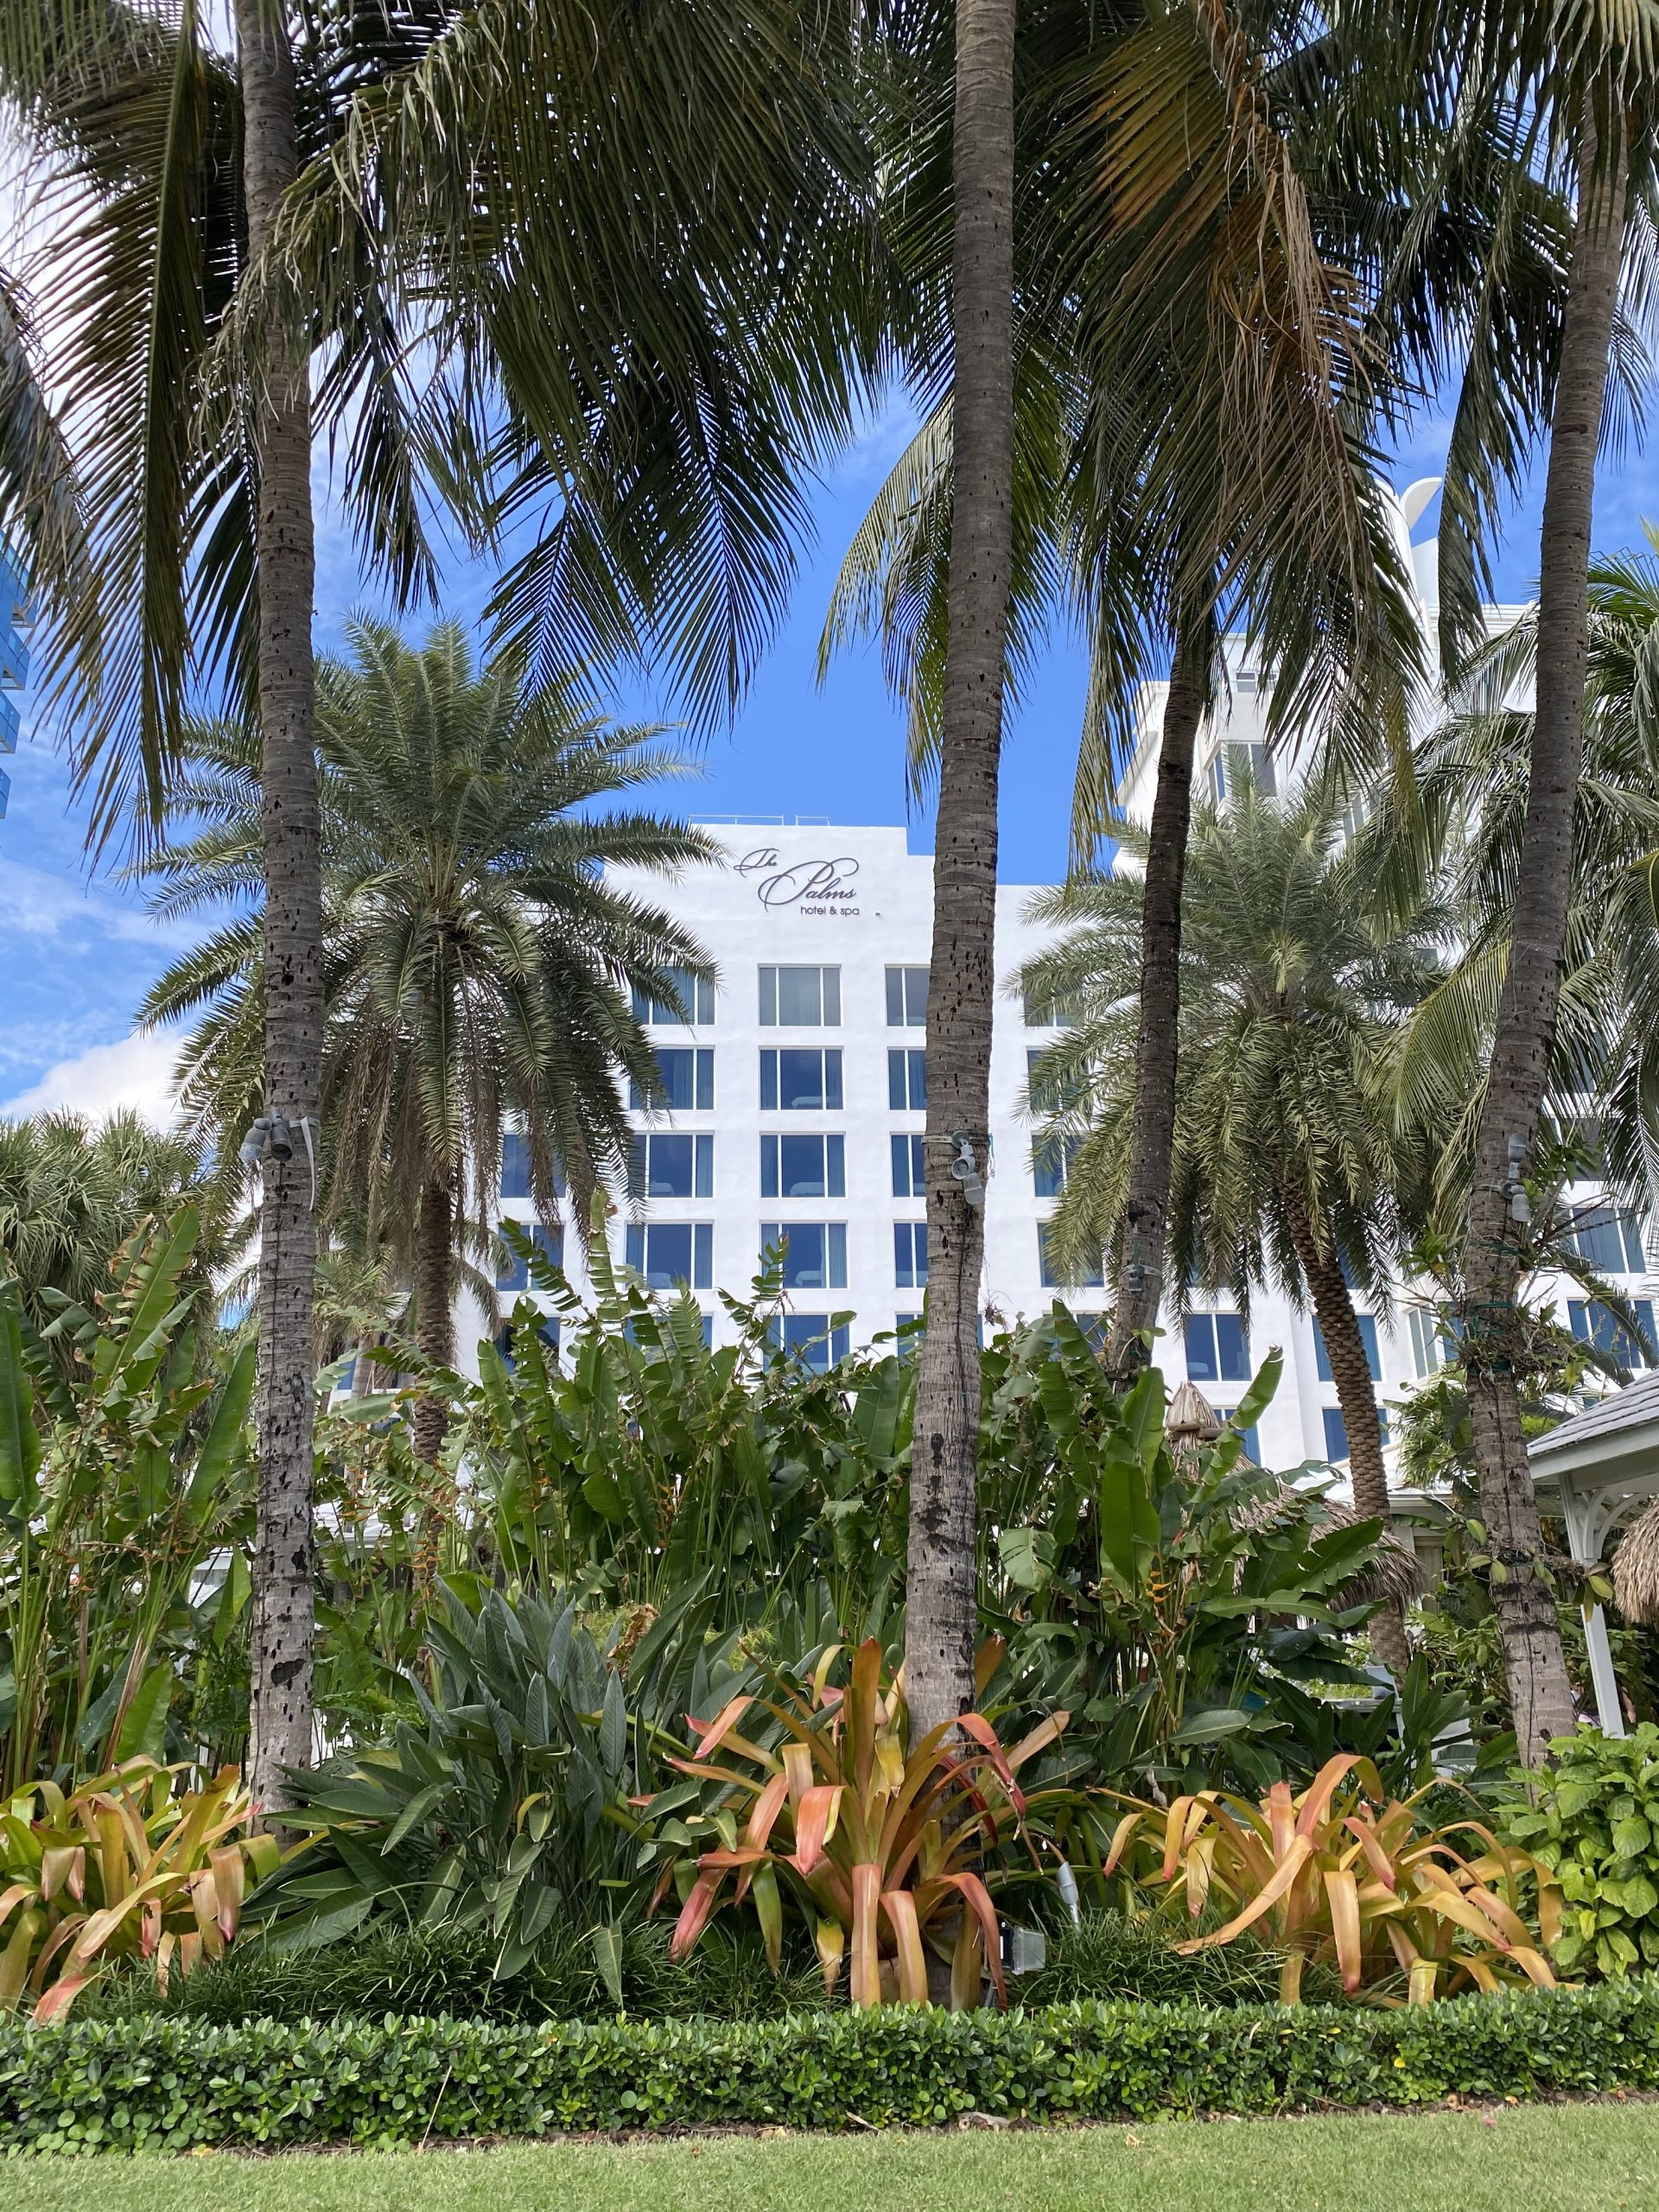 The Palms Hotel & Spa: Staycation or Vacation in Miami Beach Miami Mom Collective